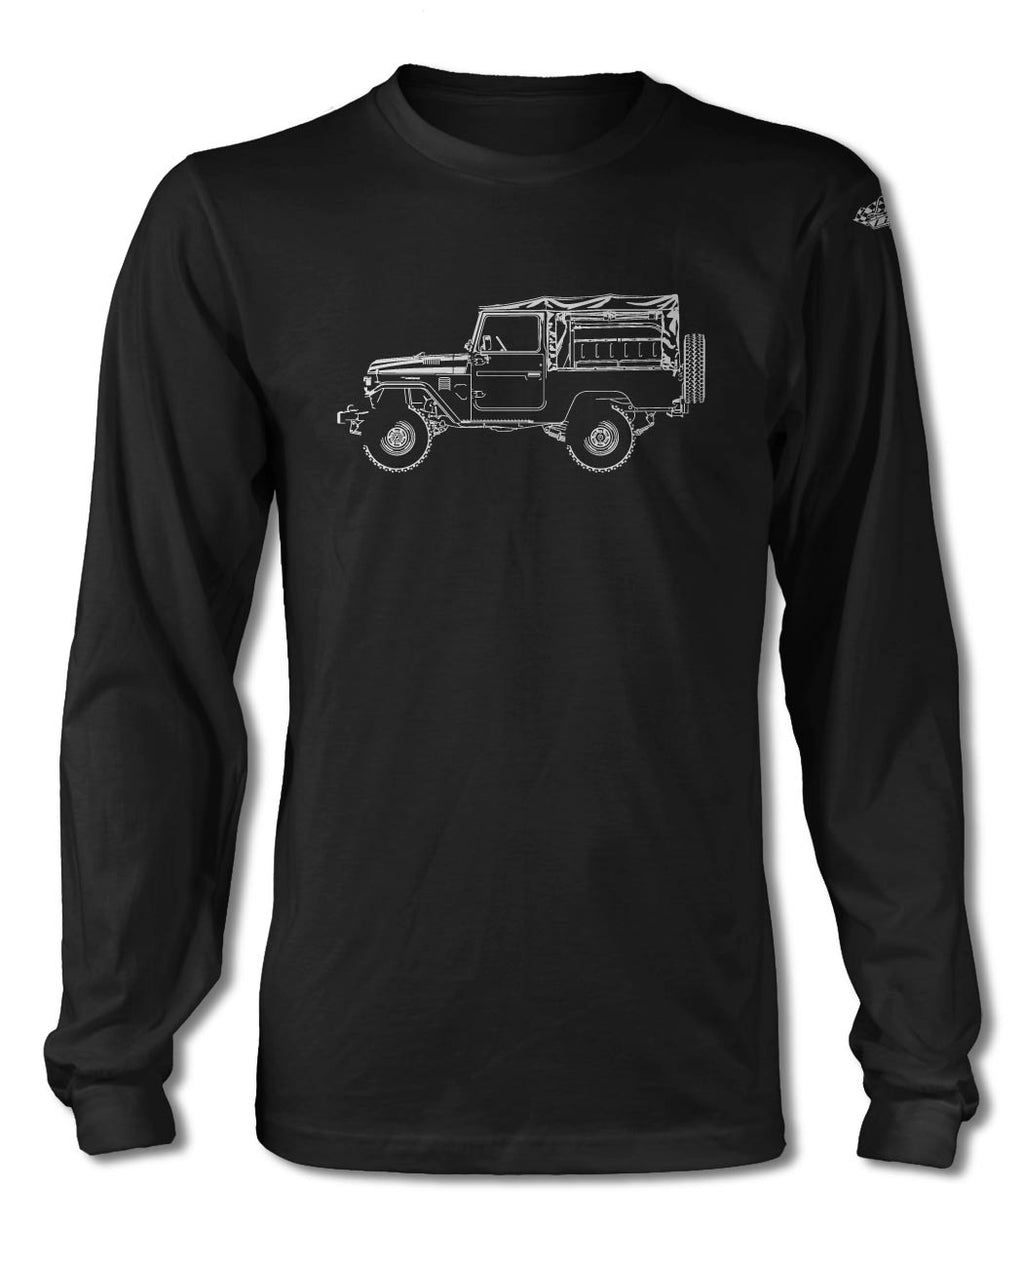 Toyota BJ43 FJ43 Land Cruiser 4x4 T-Shirt - Long Sleeves - Side View